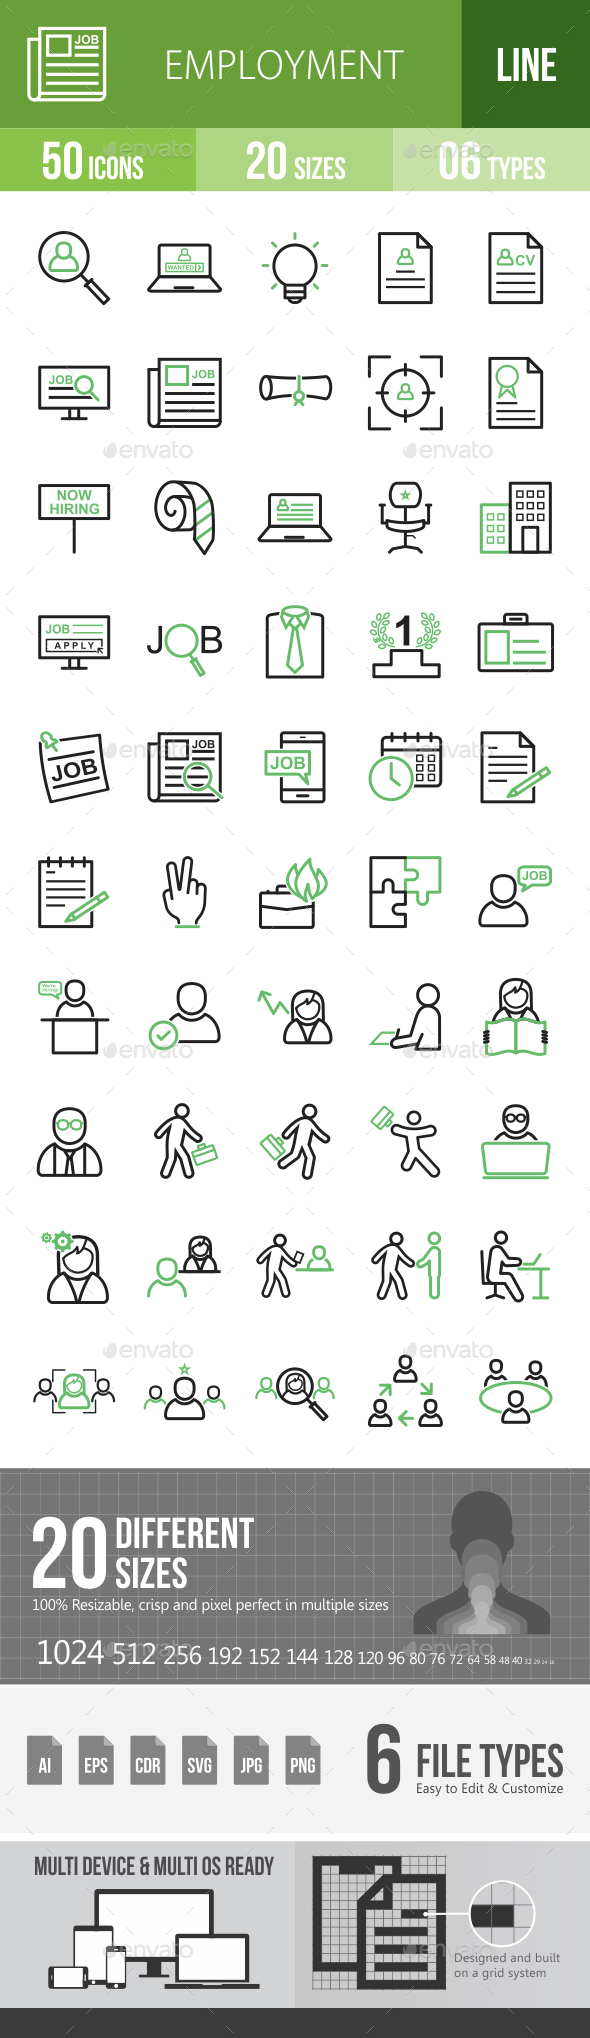 Employment Line Green & Black Icons - Icons